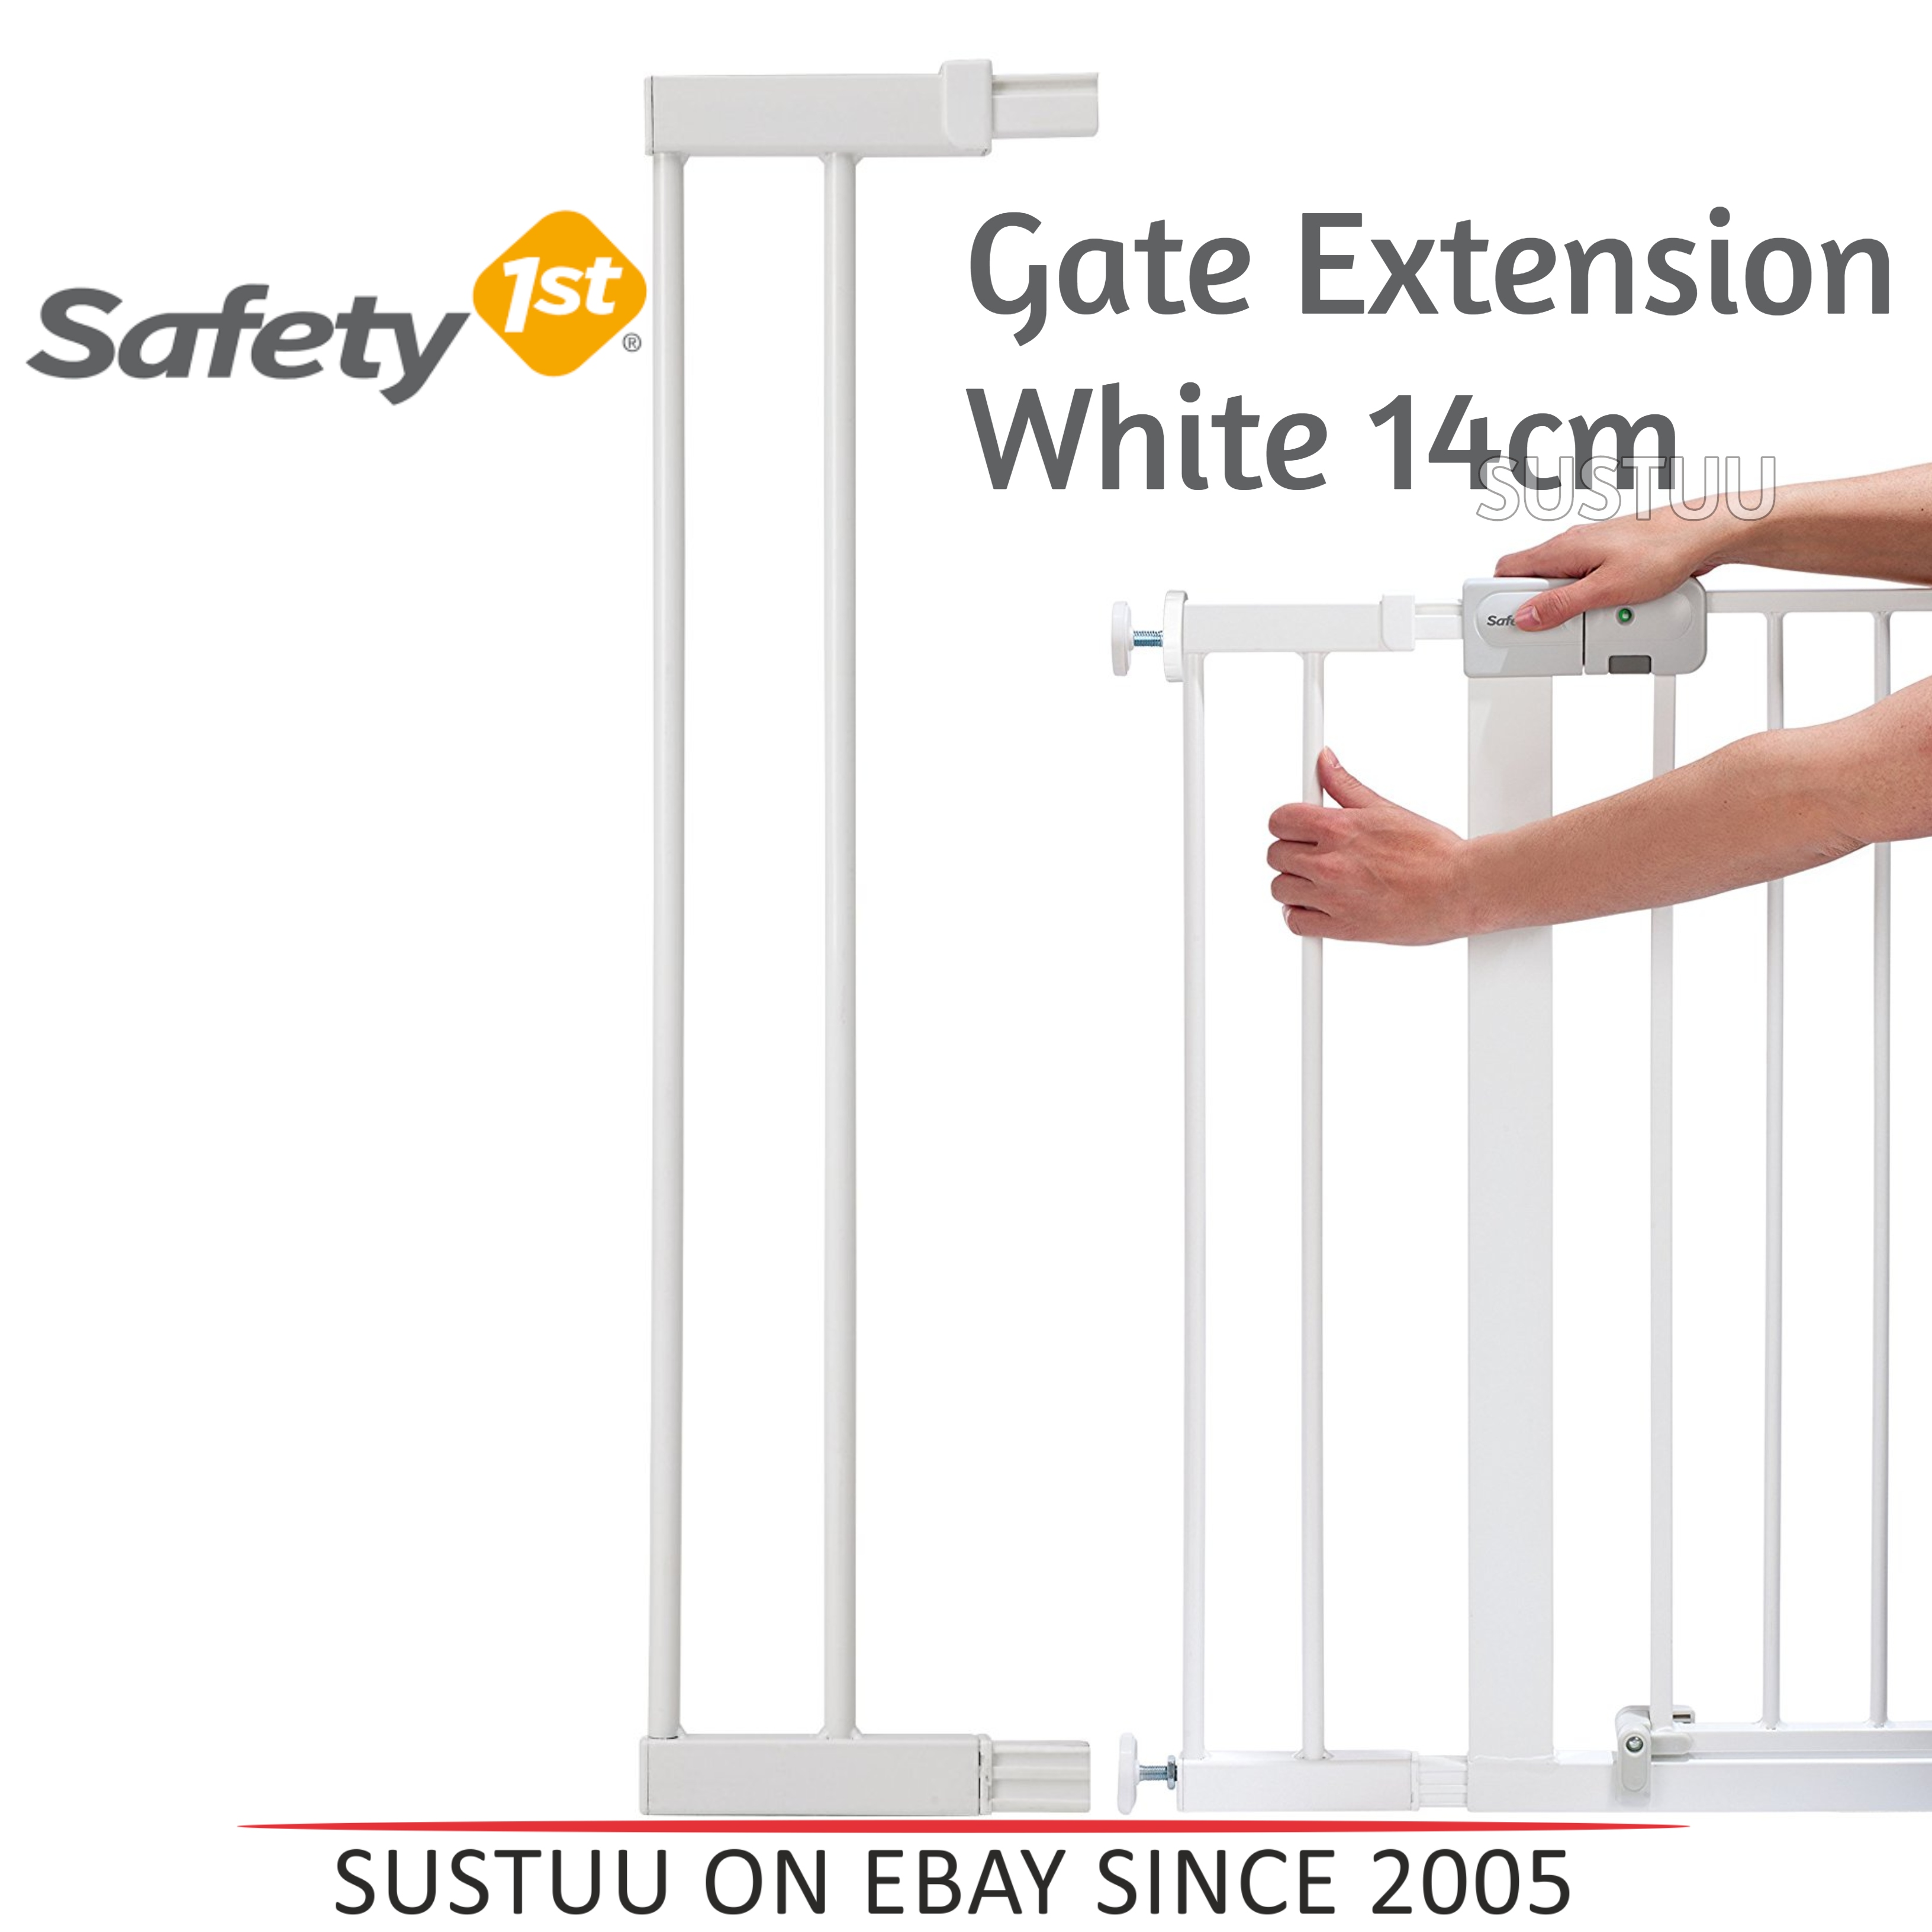 Safety 1st Pressure Fit Gate Extensionkids Safety Extension Door